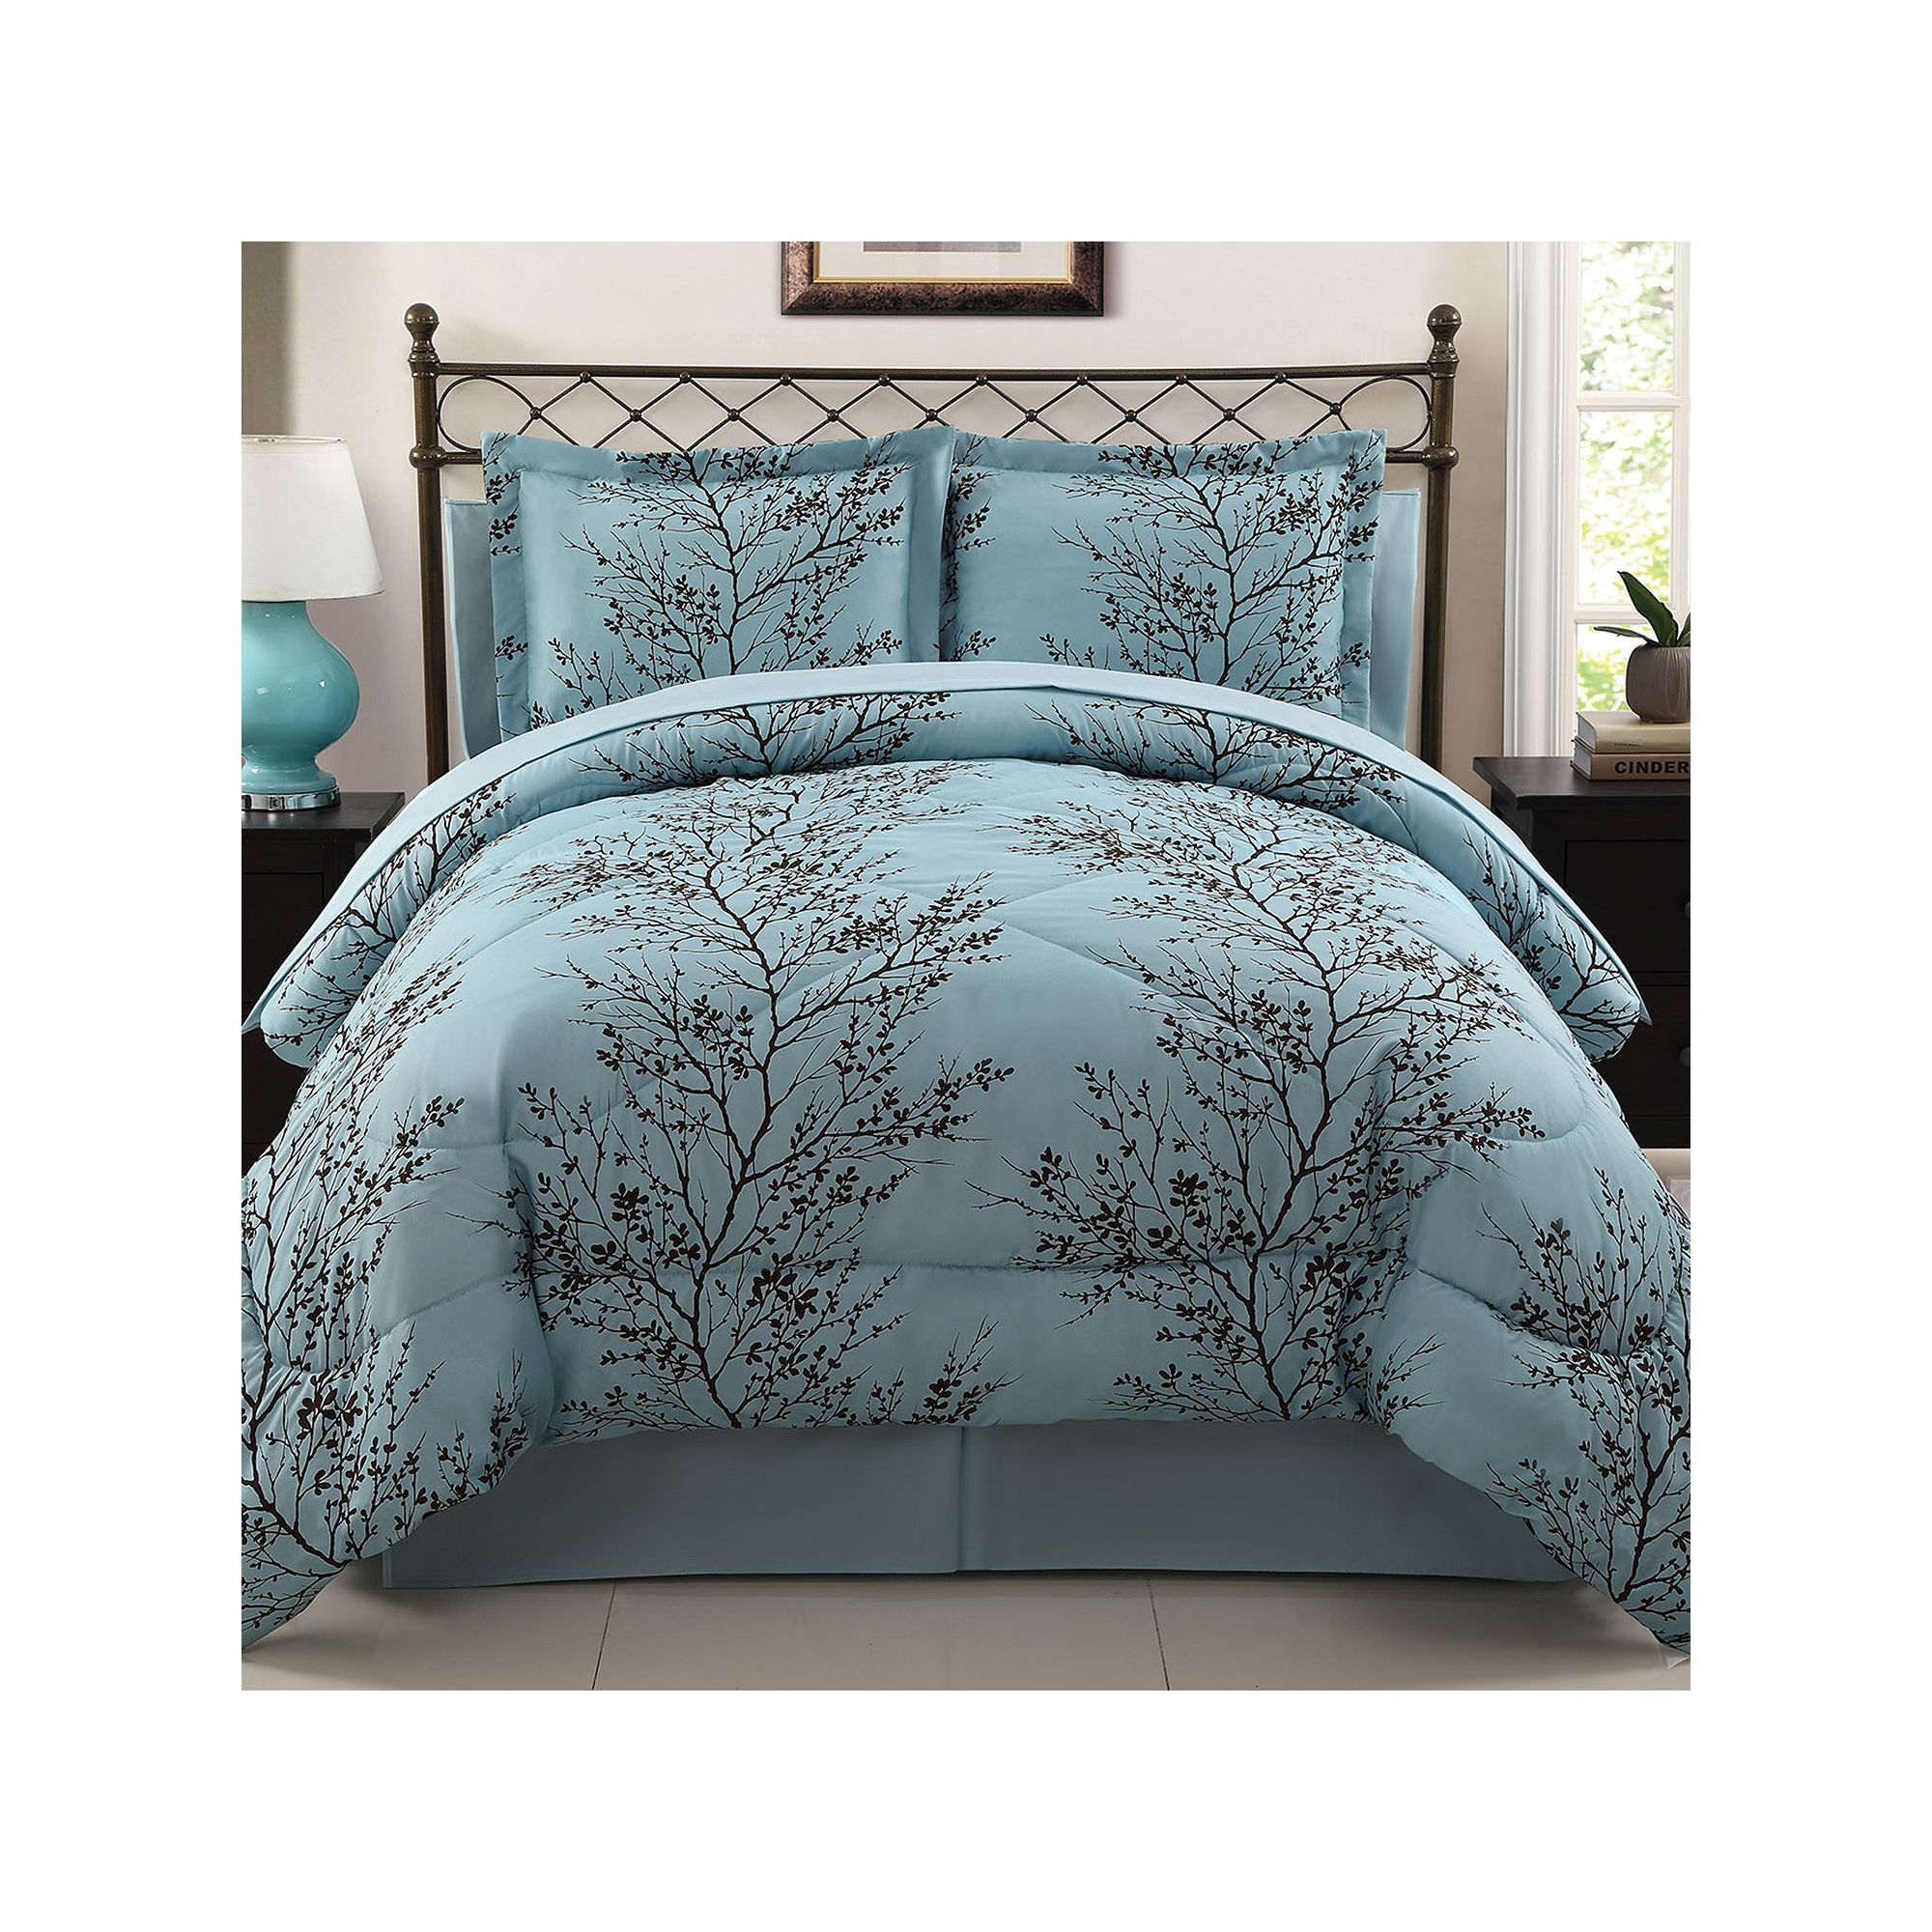 reversible ding green elliot and ruched plaid comforters purple complete piece gardens latitude yakunina ombre blue homes bed info comforter set